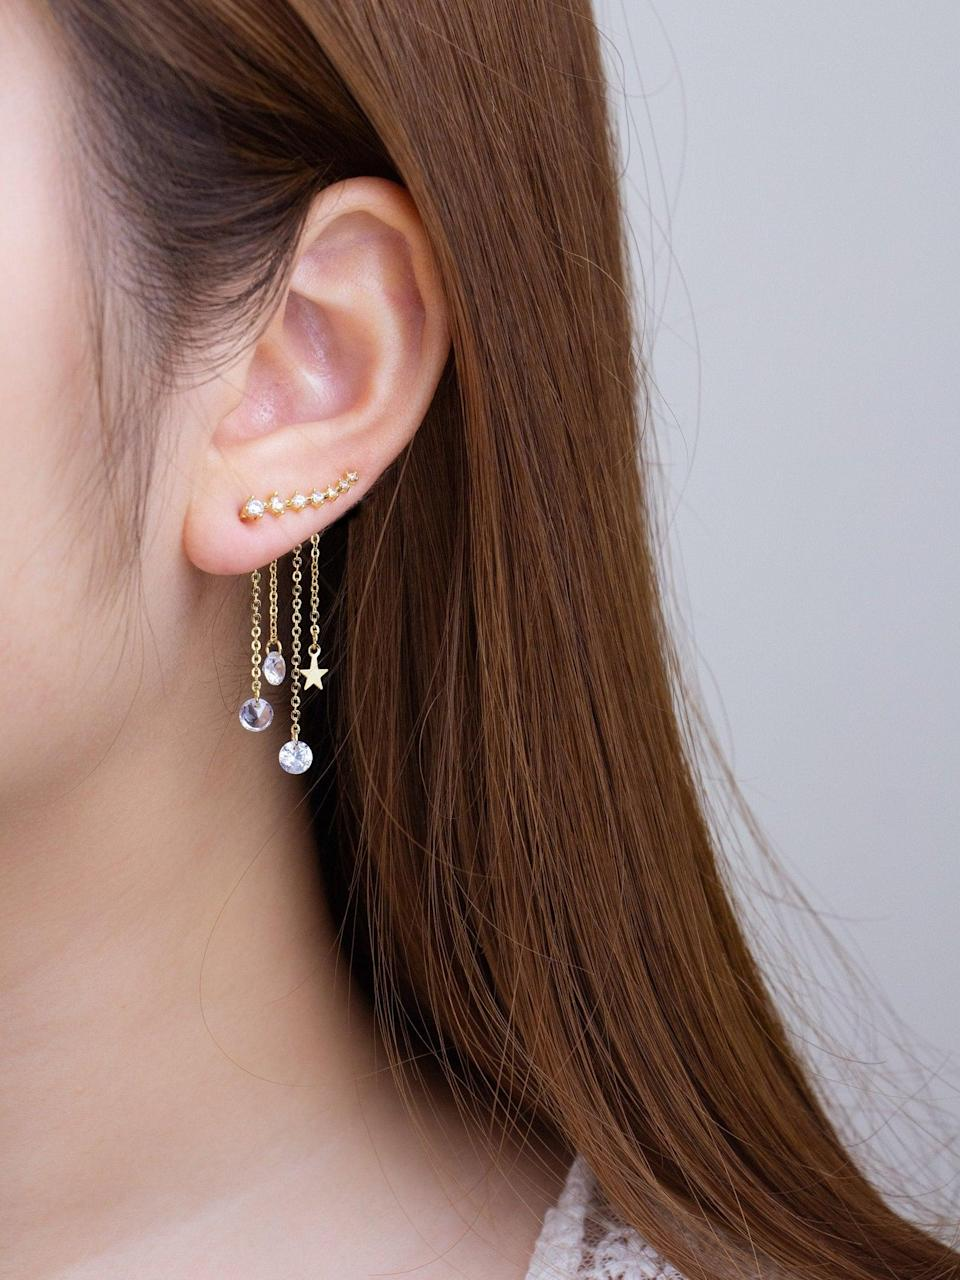 <p>We're absolutely in love with these unique <span>Two-Way Gold Star Ear Climber Earrings With Crystal Chain</span> ($15, originally $28). It's so glamorous and whimsical. They can wear the ear climber by itself or with the drop detailing.</p>